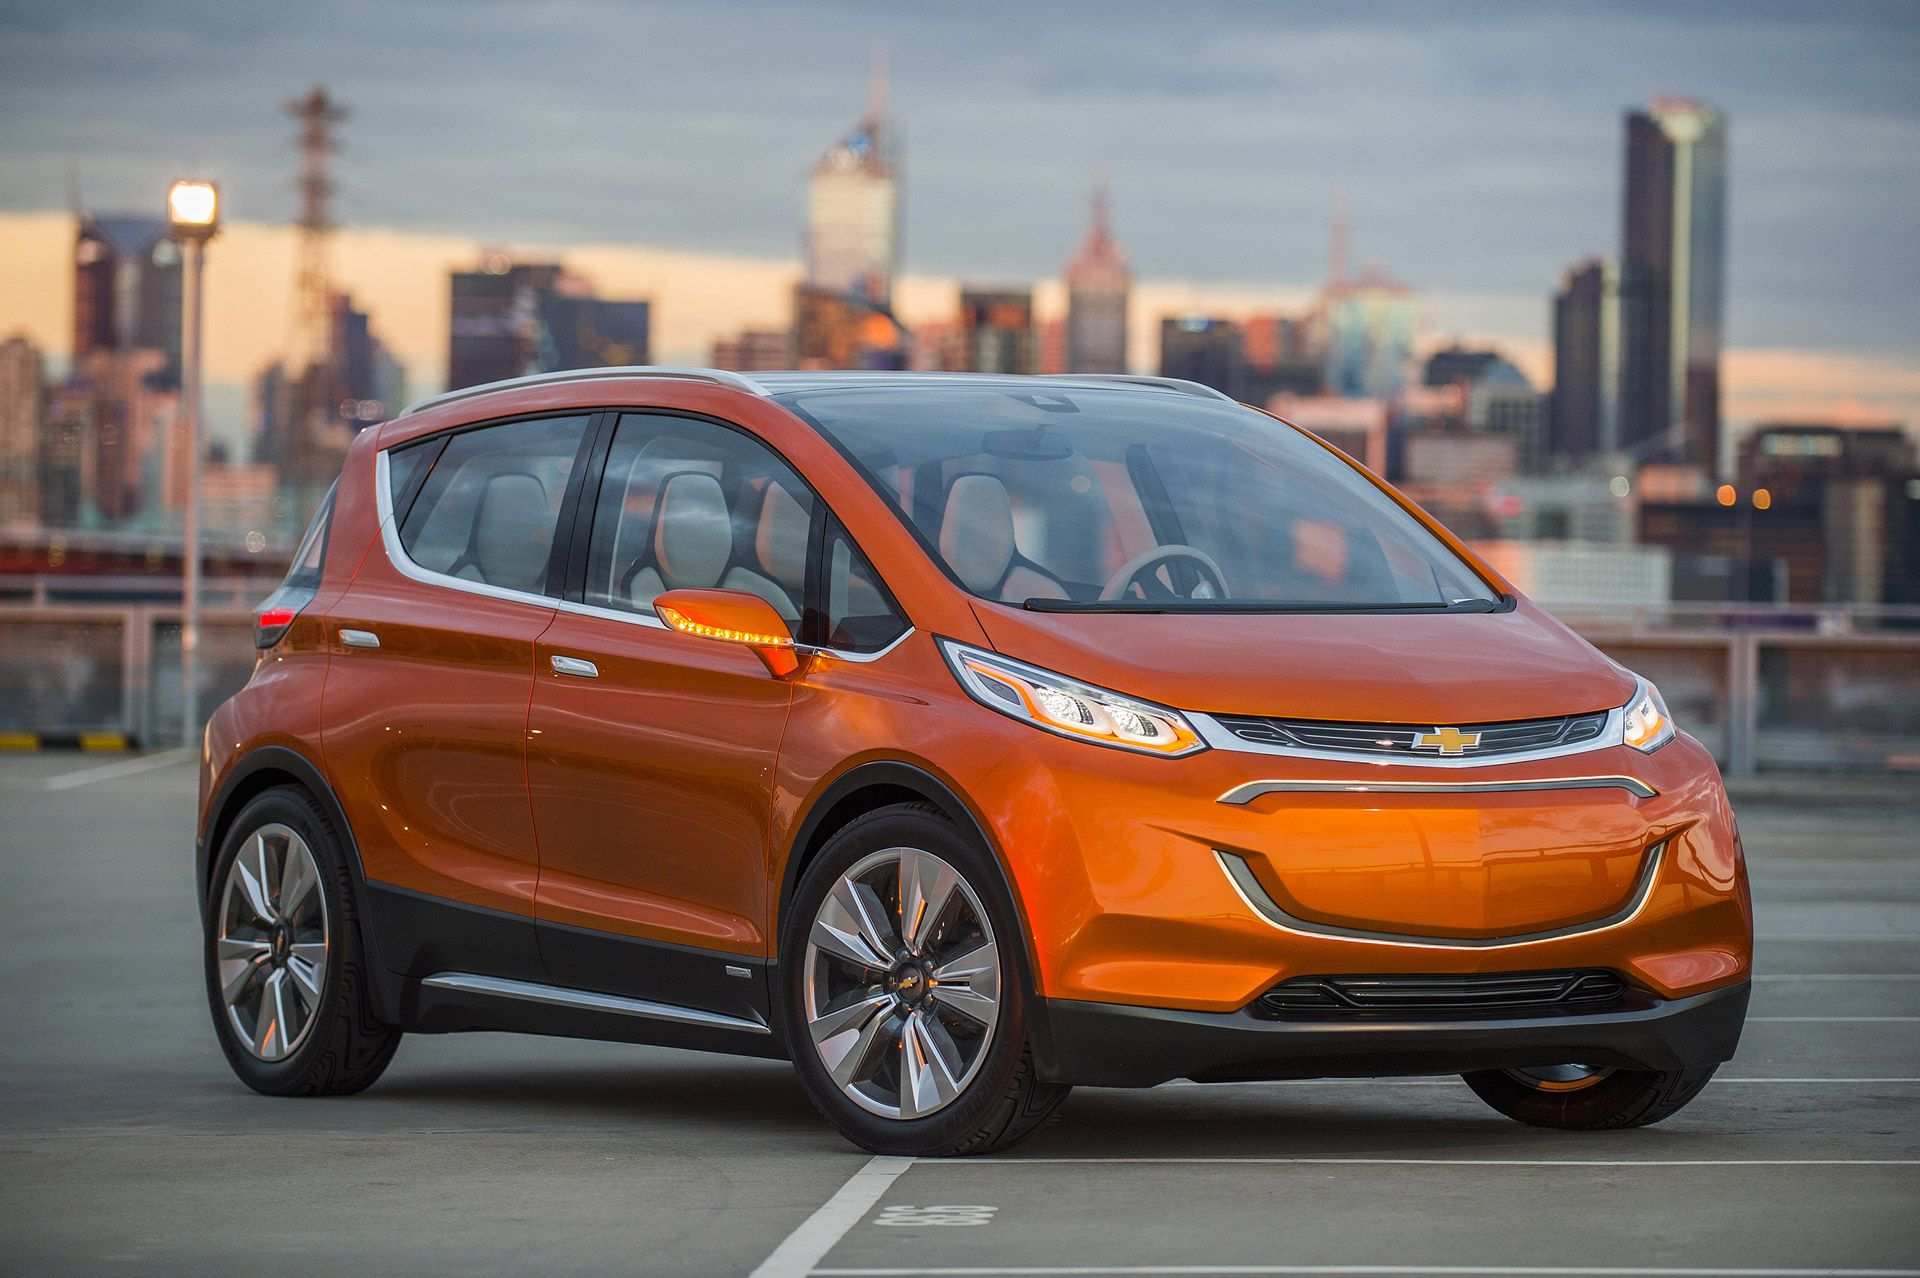 Gm Officially Confirms It Will Build Chevy Bolt Electric Car With